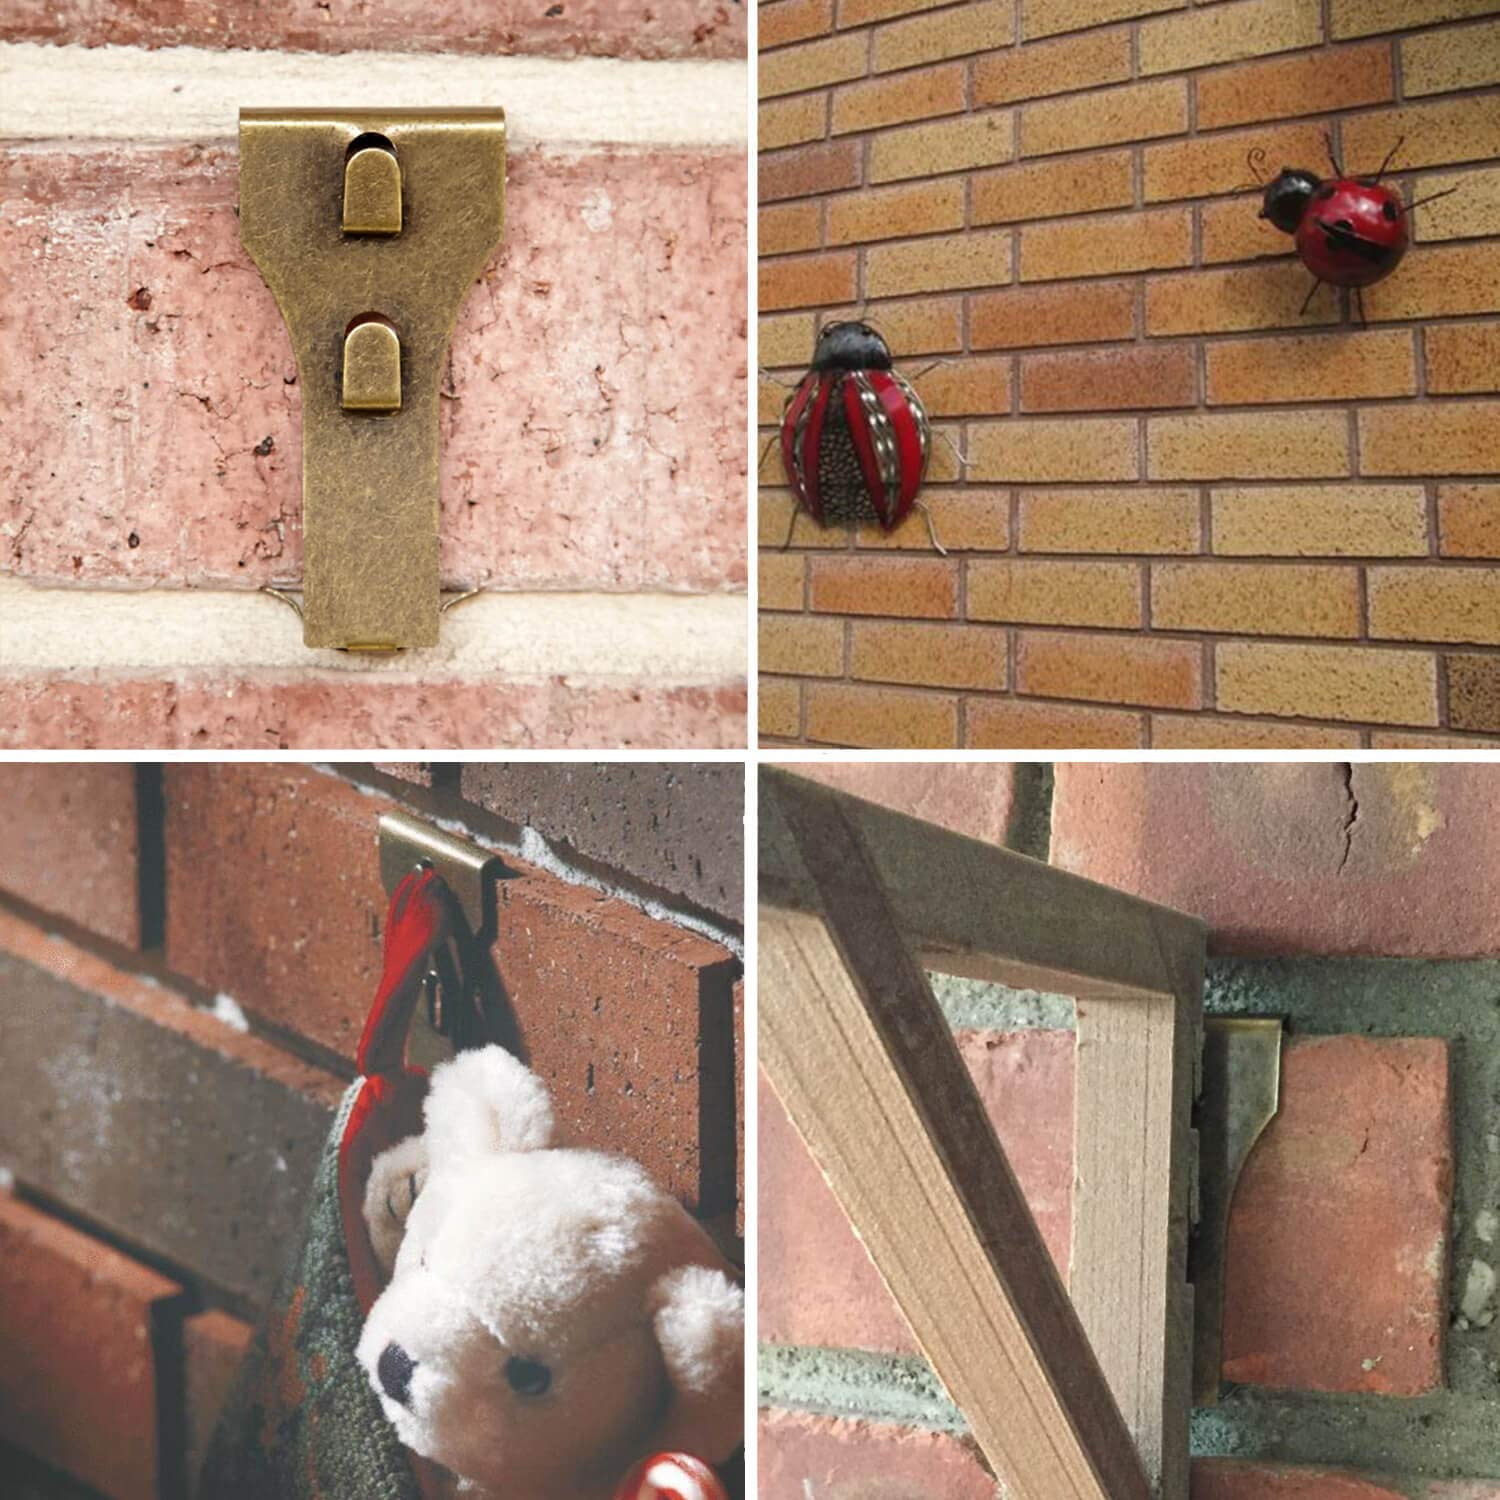 Metal Brick Hooks for Hanging 10 Pack Bulk Brick Wall Clips Fastener Hanger Fits Brick 2 1//4 to 2 3//8 inch in Height